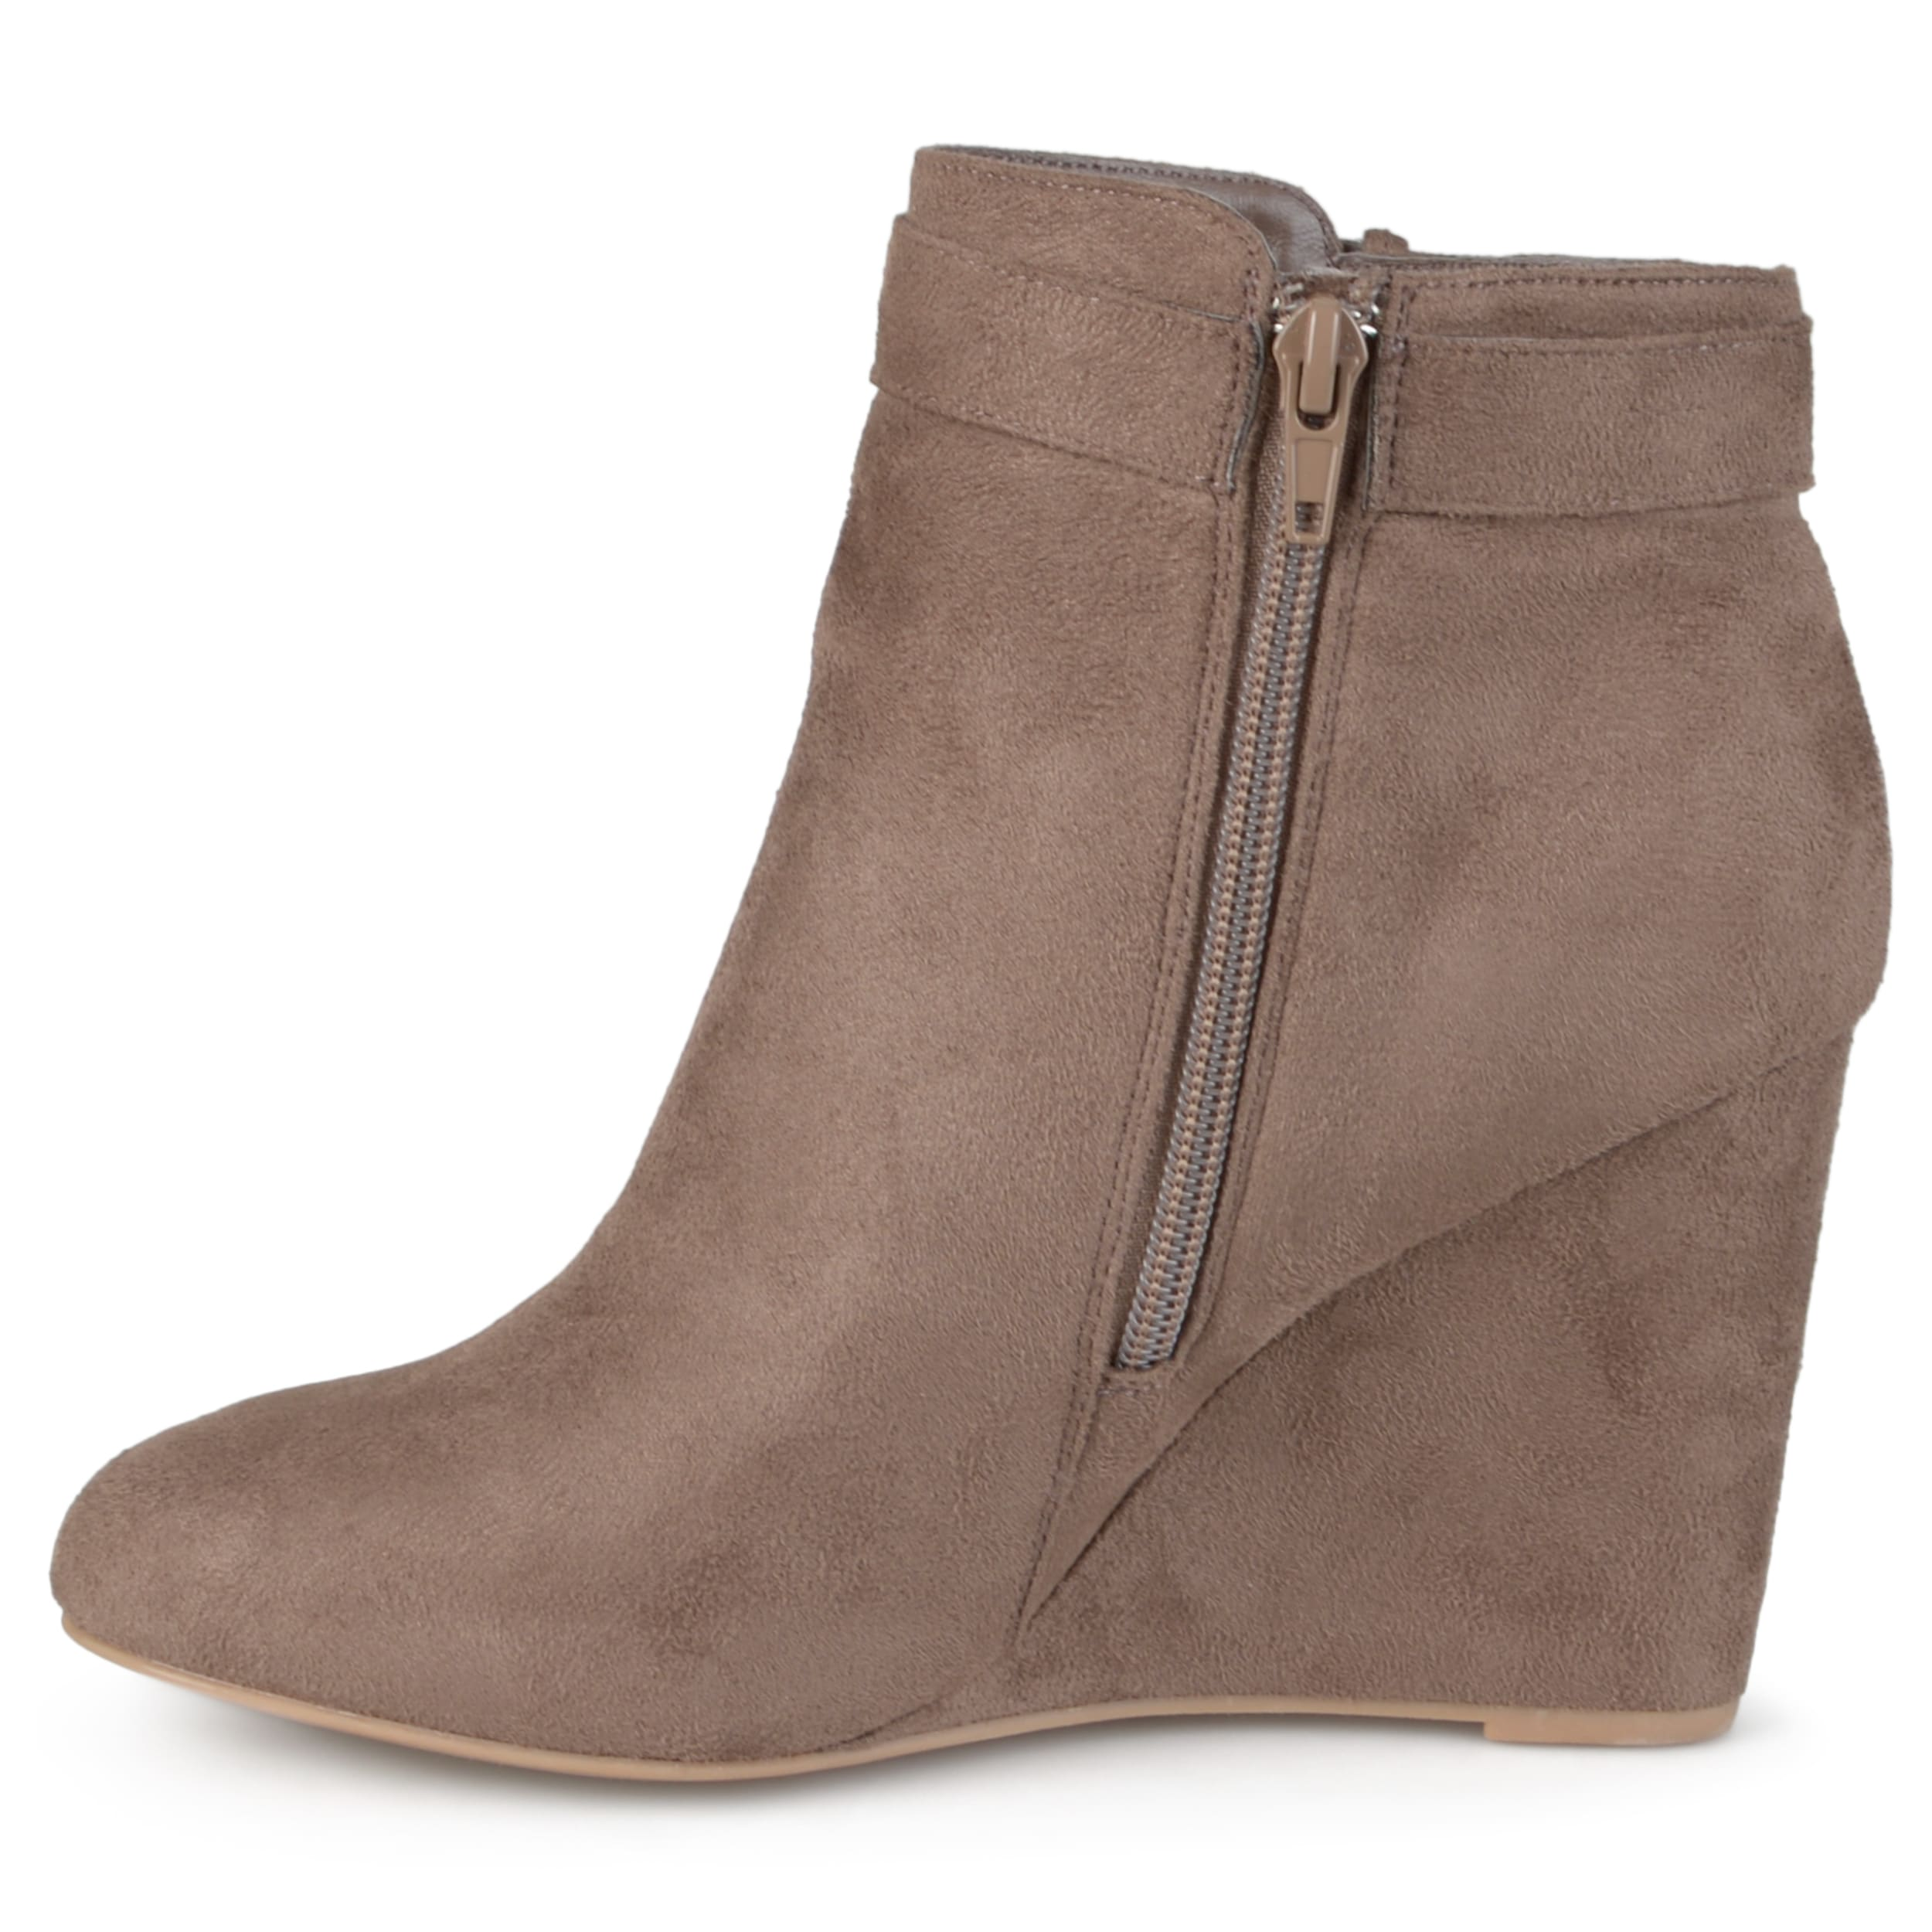 e9aec643ade1d3 Details about Journee Collection Womens Gia Suede Closed Toe Ankle Fashion  Boots